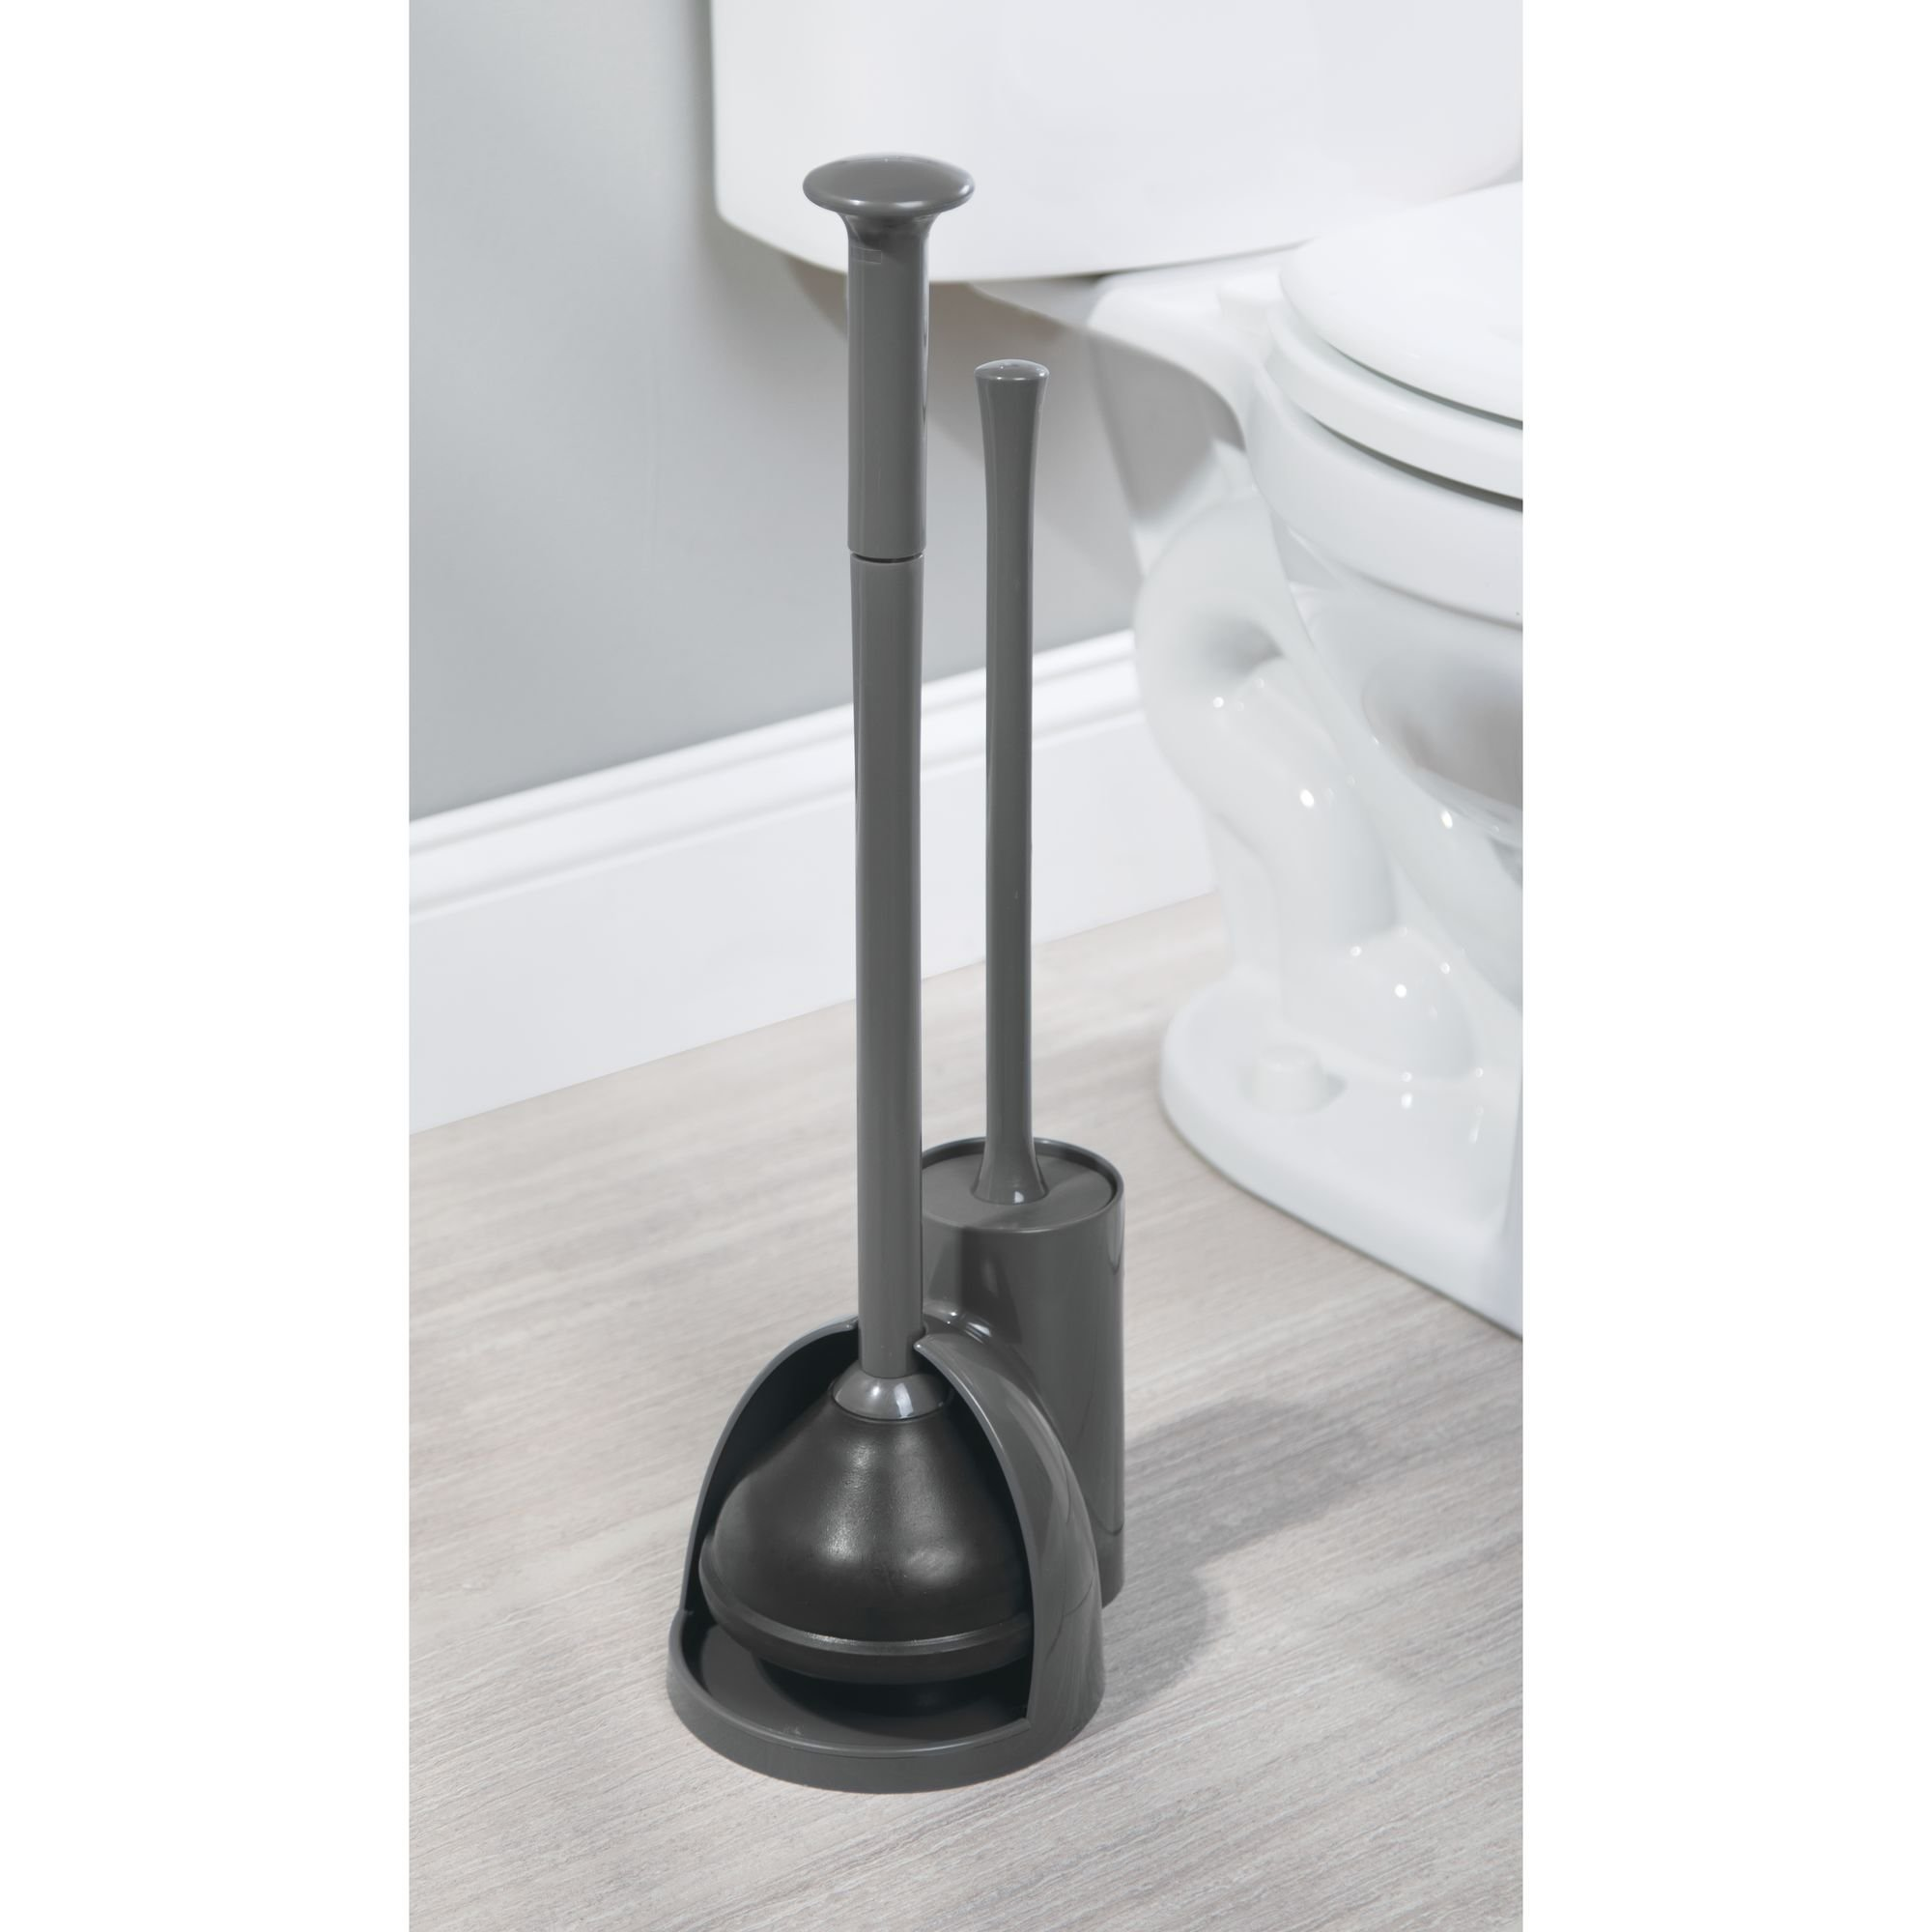 mDesign Modern Slim Compact Freestanding Plastic Toilet Bowl Brush Cleaner and Plunger Combo Set Kit with Holder Caddy for Bathroom Storage and Organization - Covered Lid Brush, 2 Pack - Charcoal Gray by mDesign (Image #2)